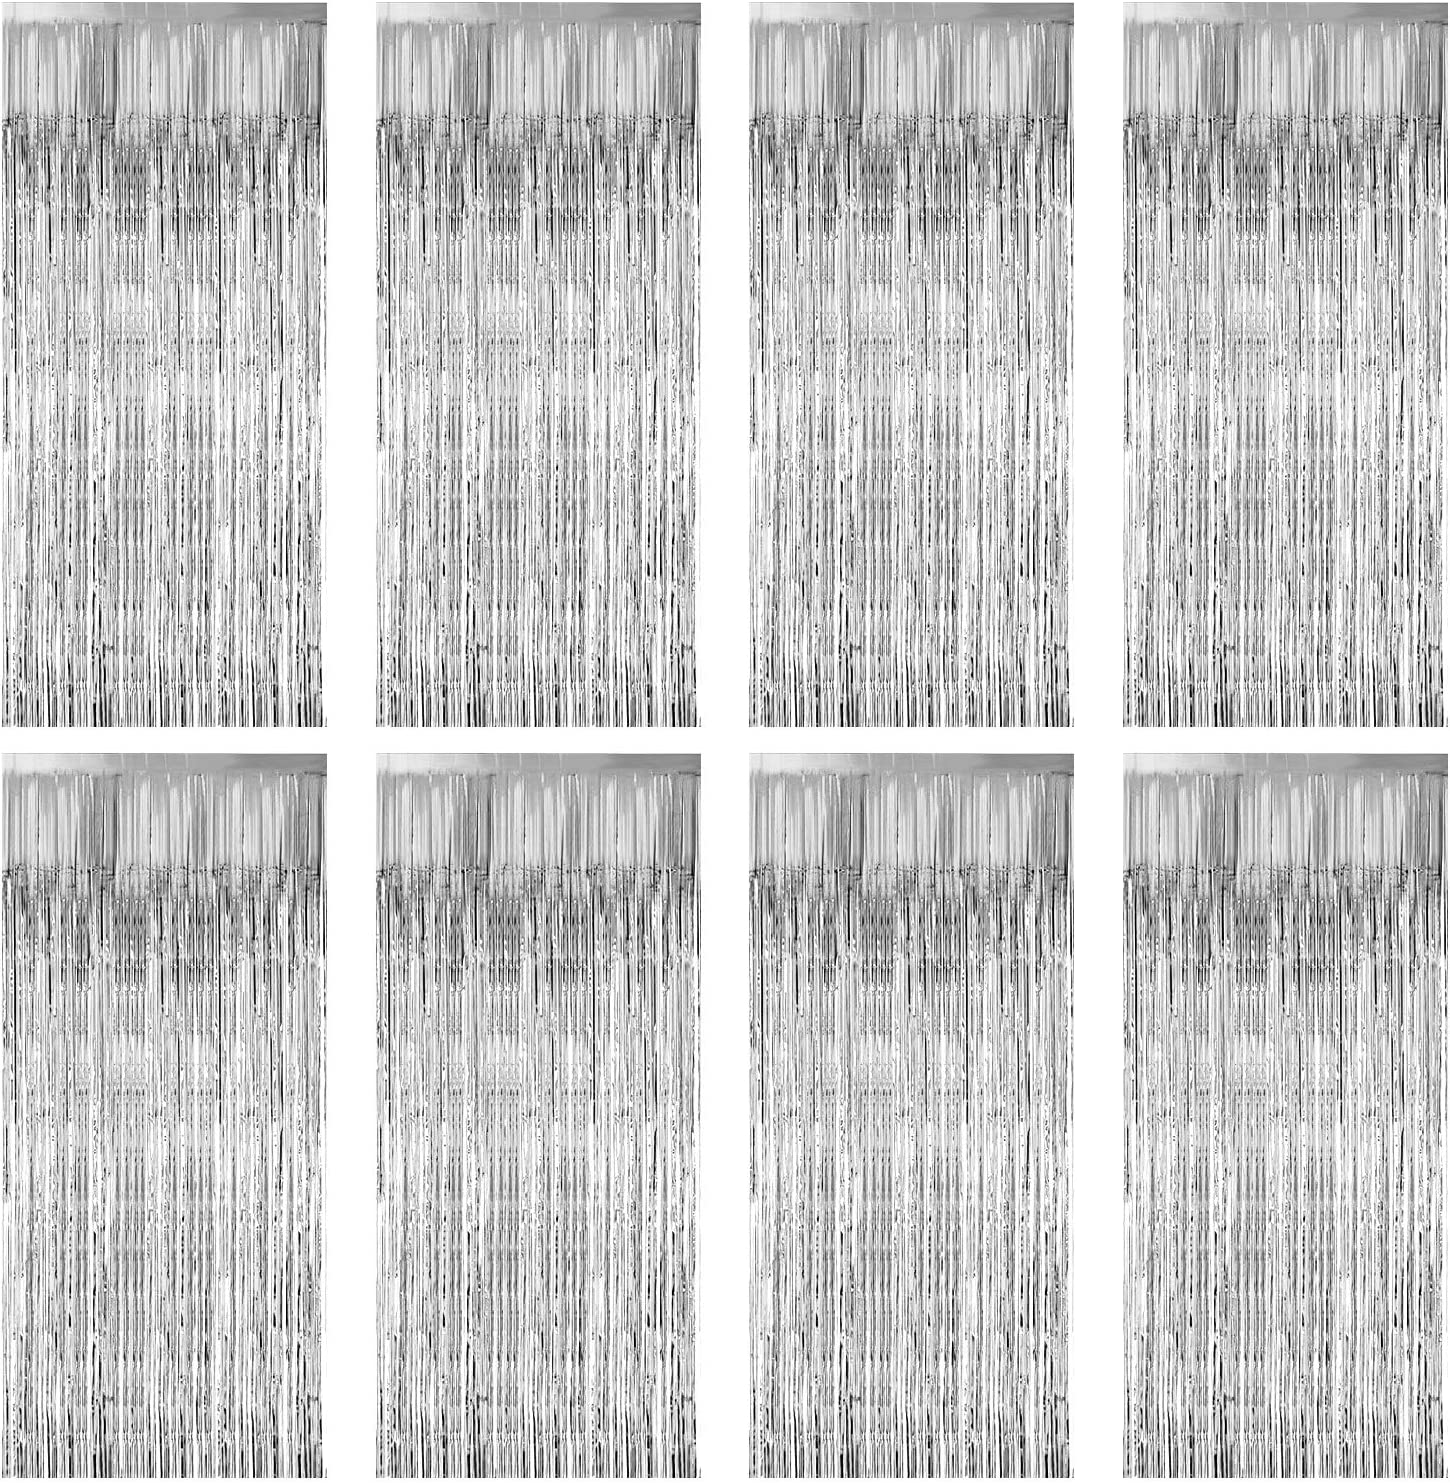 Zealor 8 Pack Foil Curtains Metallic Fringe Curtains Shimmer Curtain for Birthday Wedding Party Christmas Decorations (Silver)